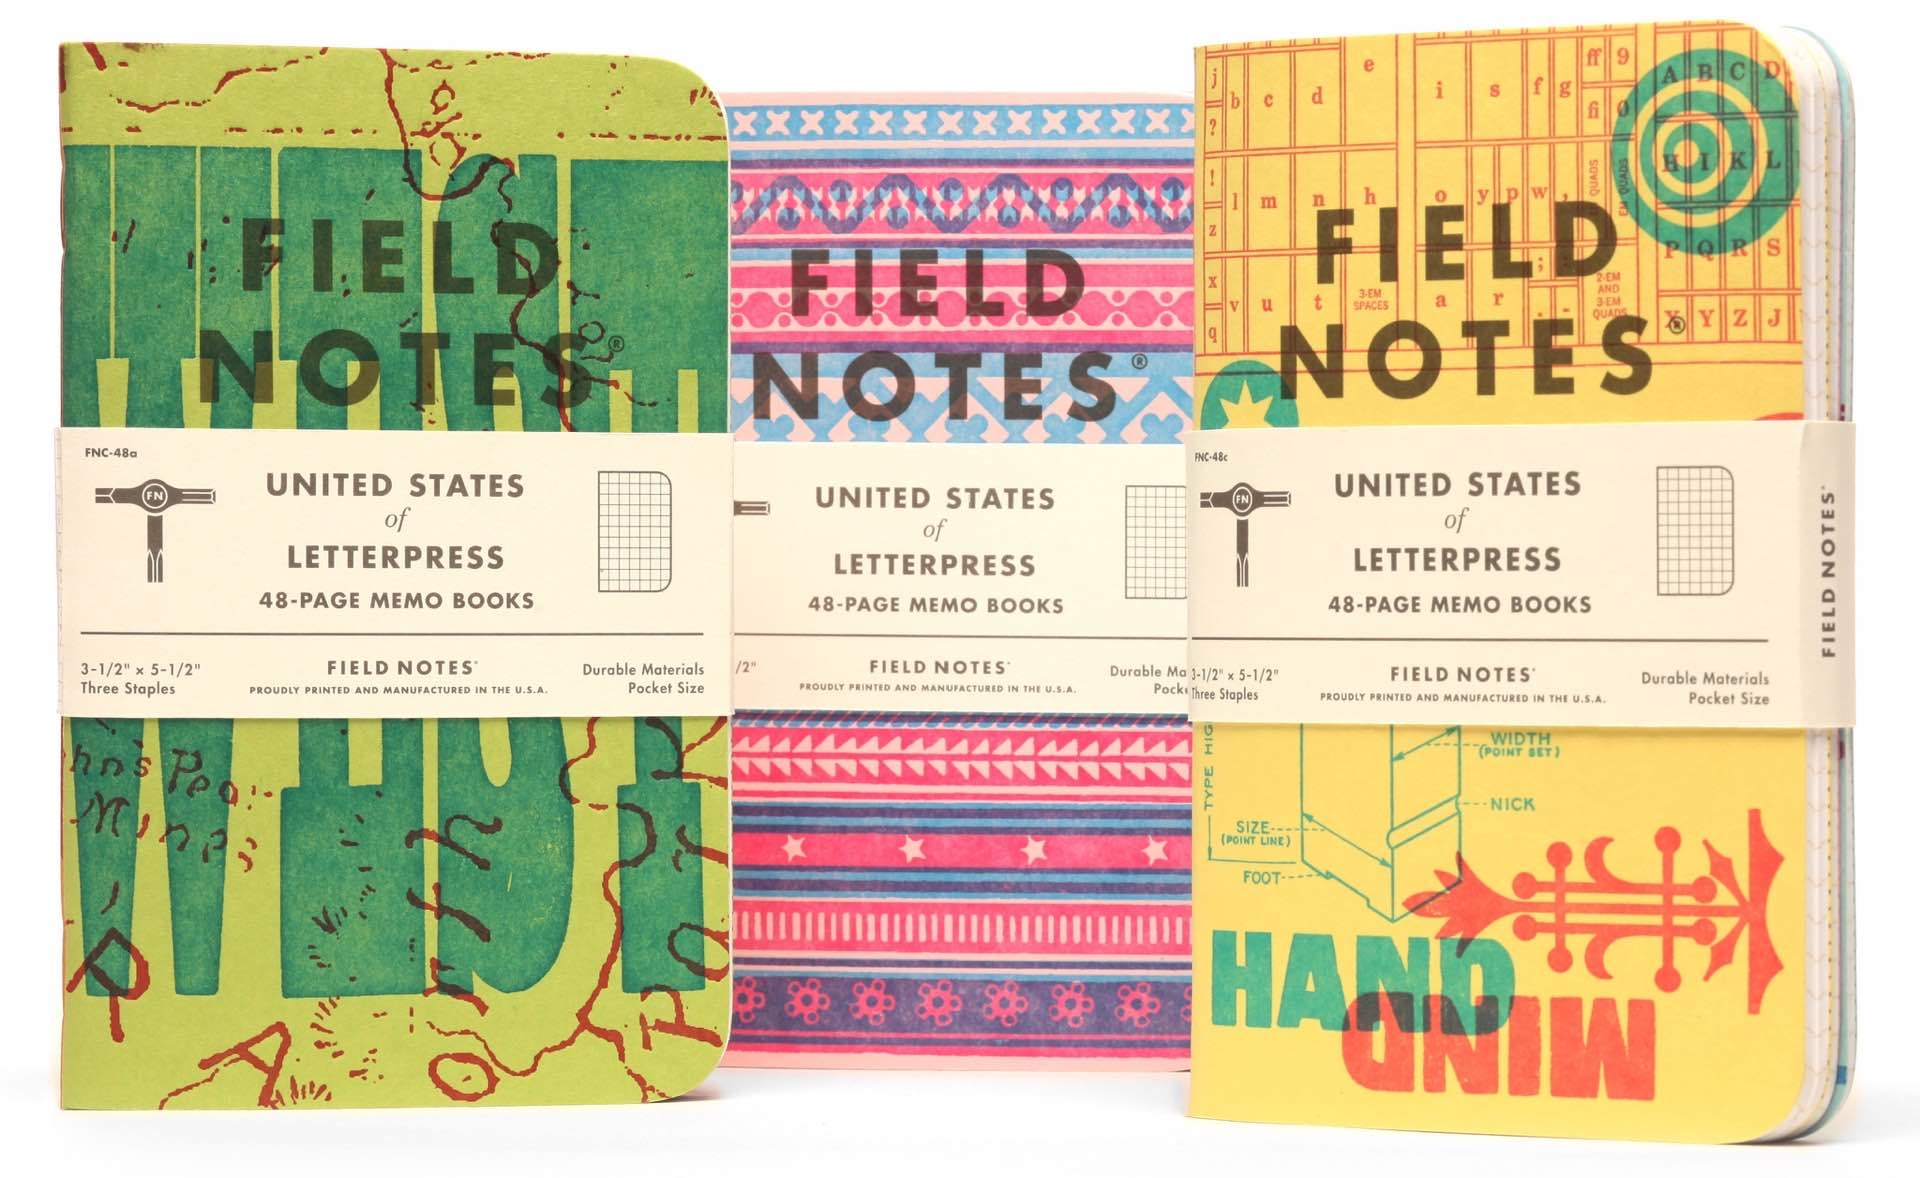 field-notes-united-states-of-letterpress-edition